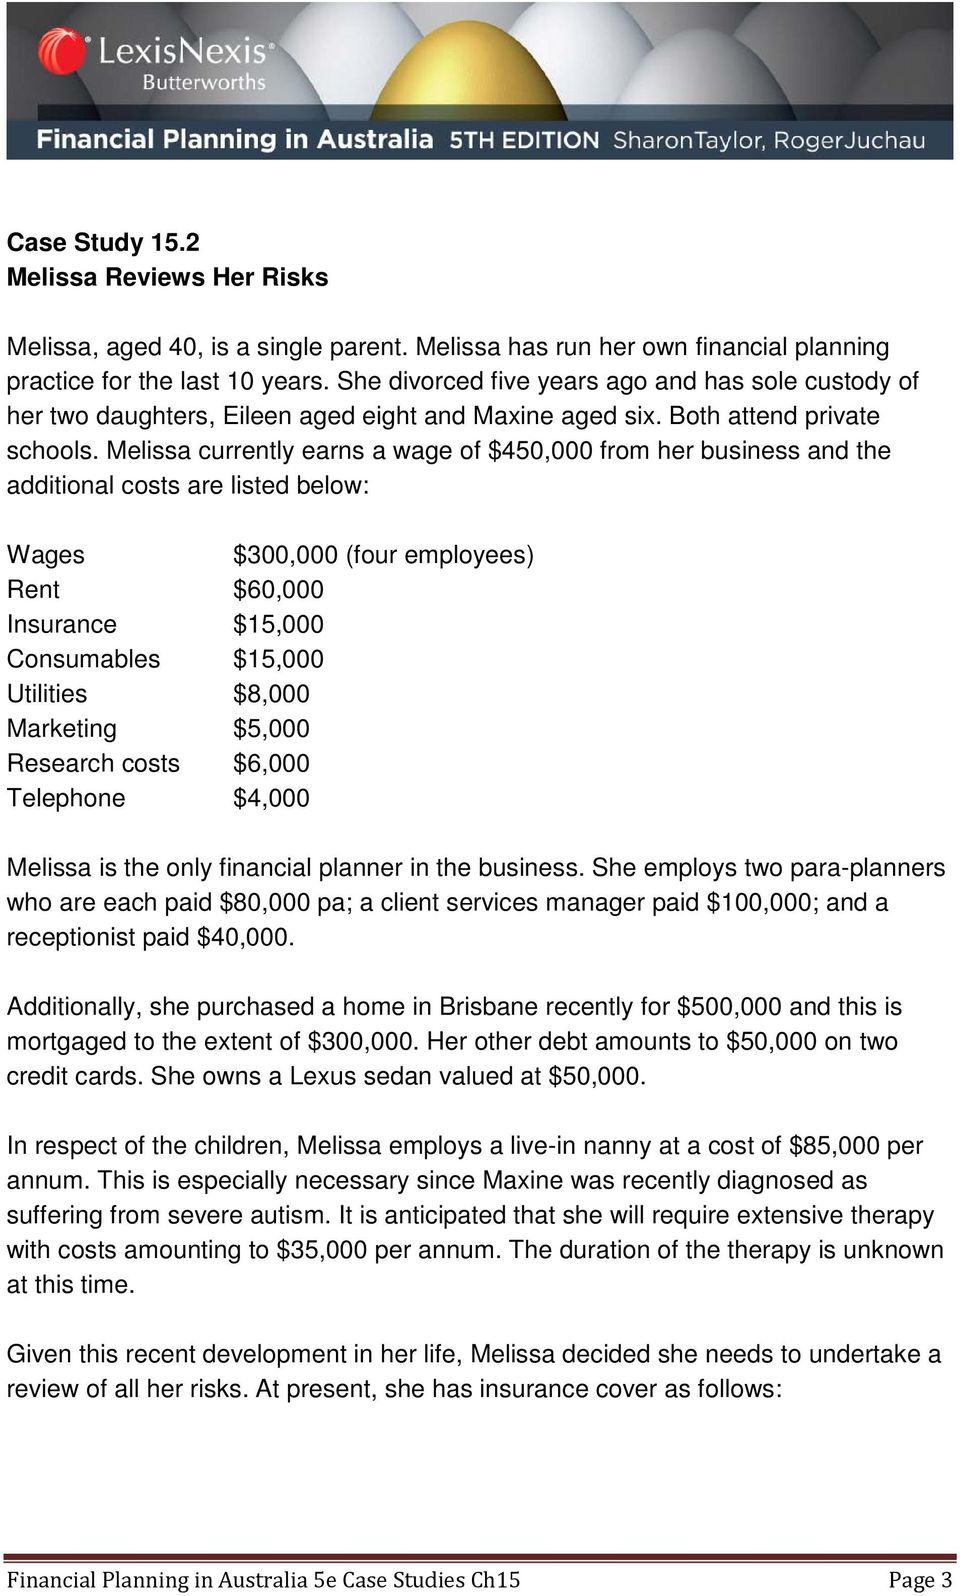 Melissa currently earns a wage of $450,000 from her business and the additional costs are listed below: Wages $300,000 (four employees) Rent $60,000 Insurance $15,000 Consumables $15,000 Utilities